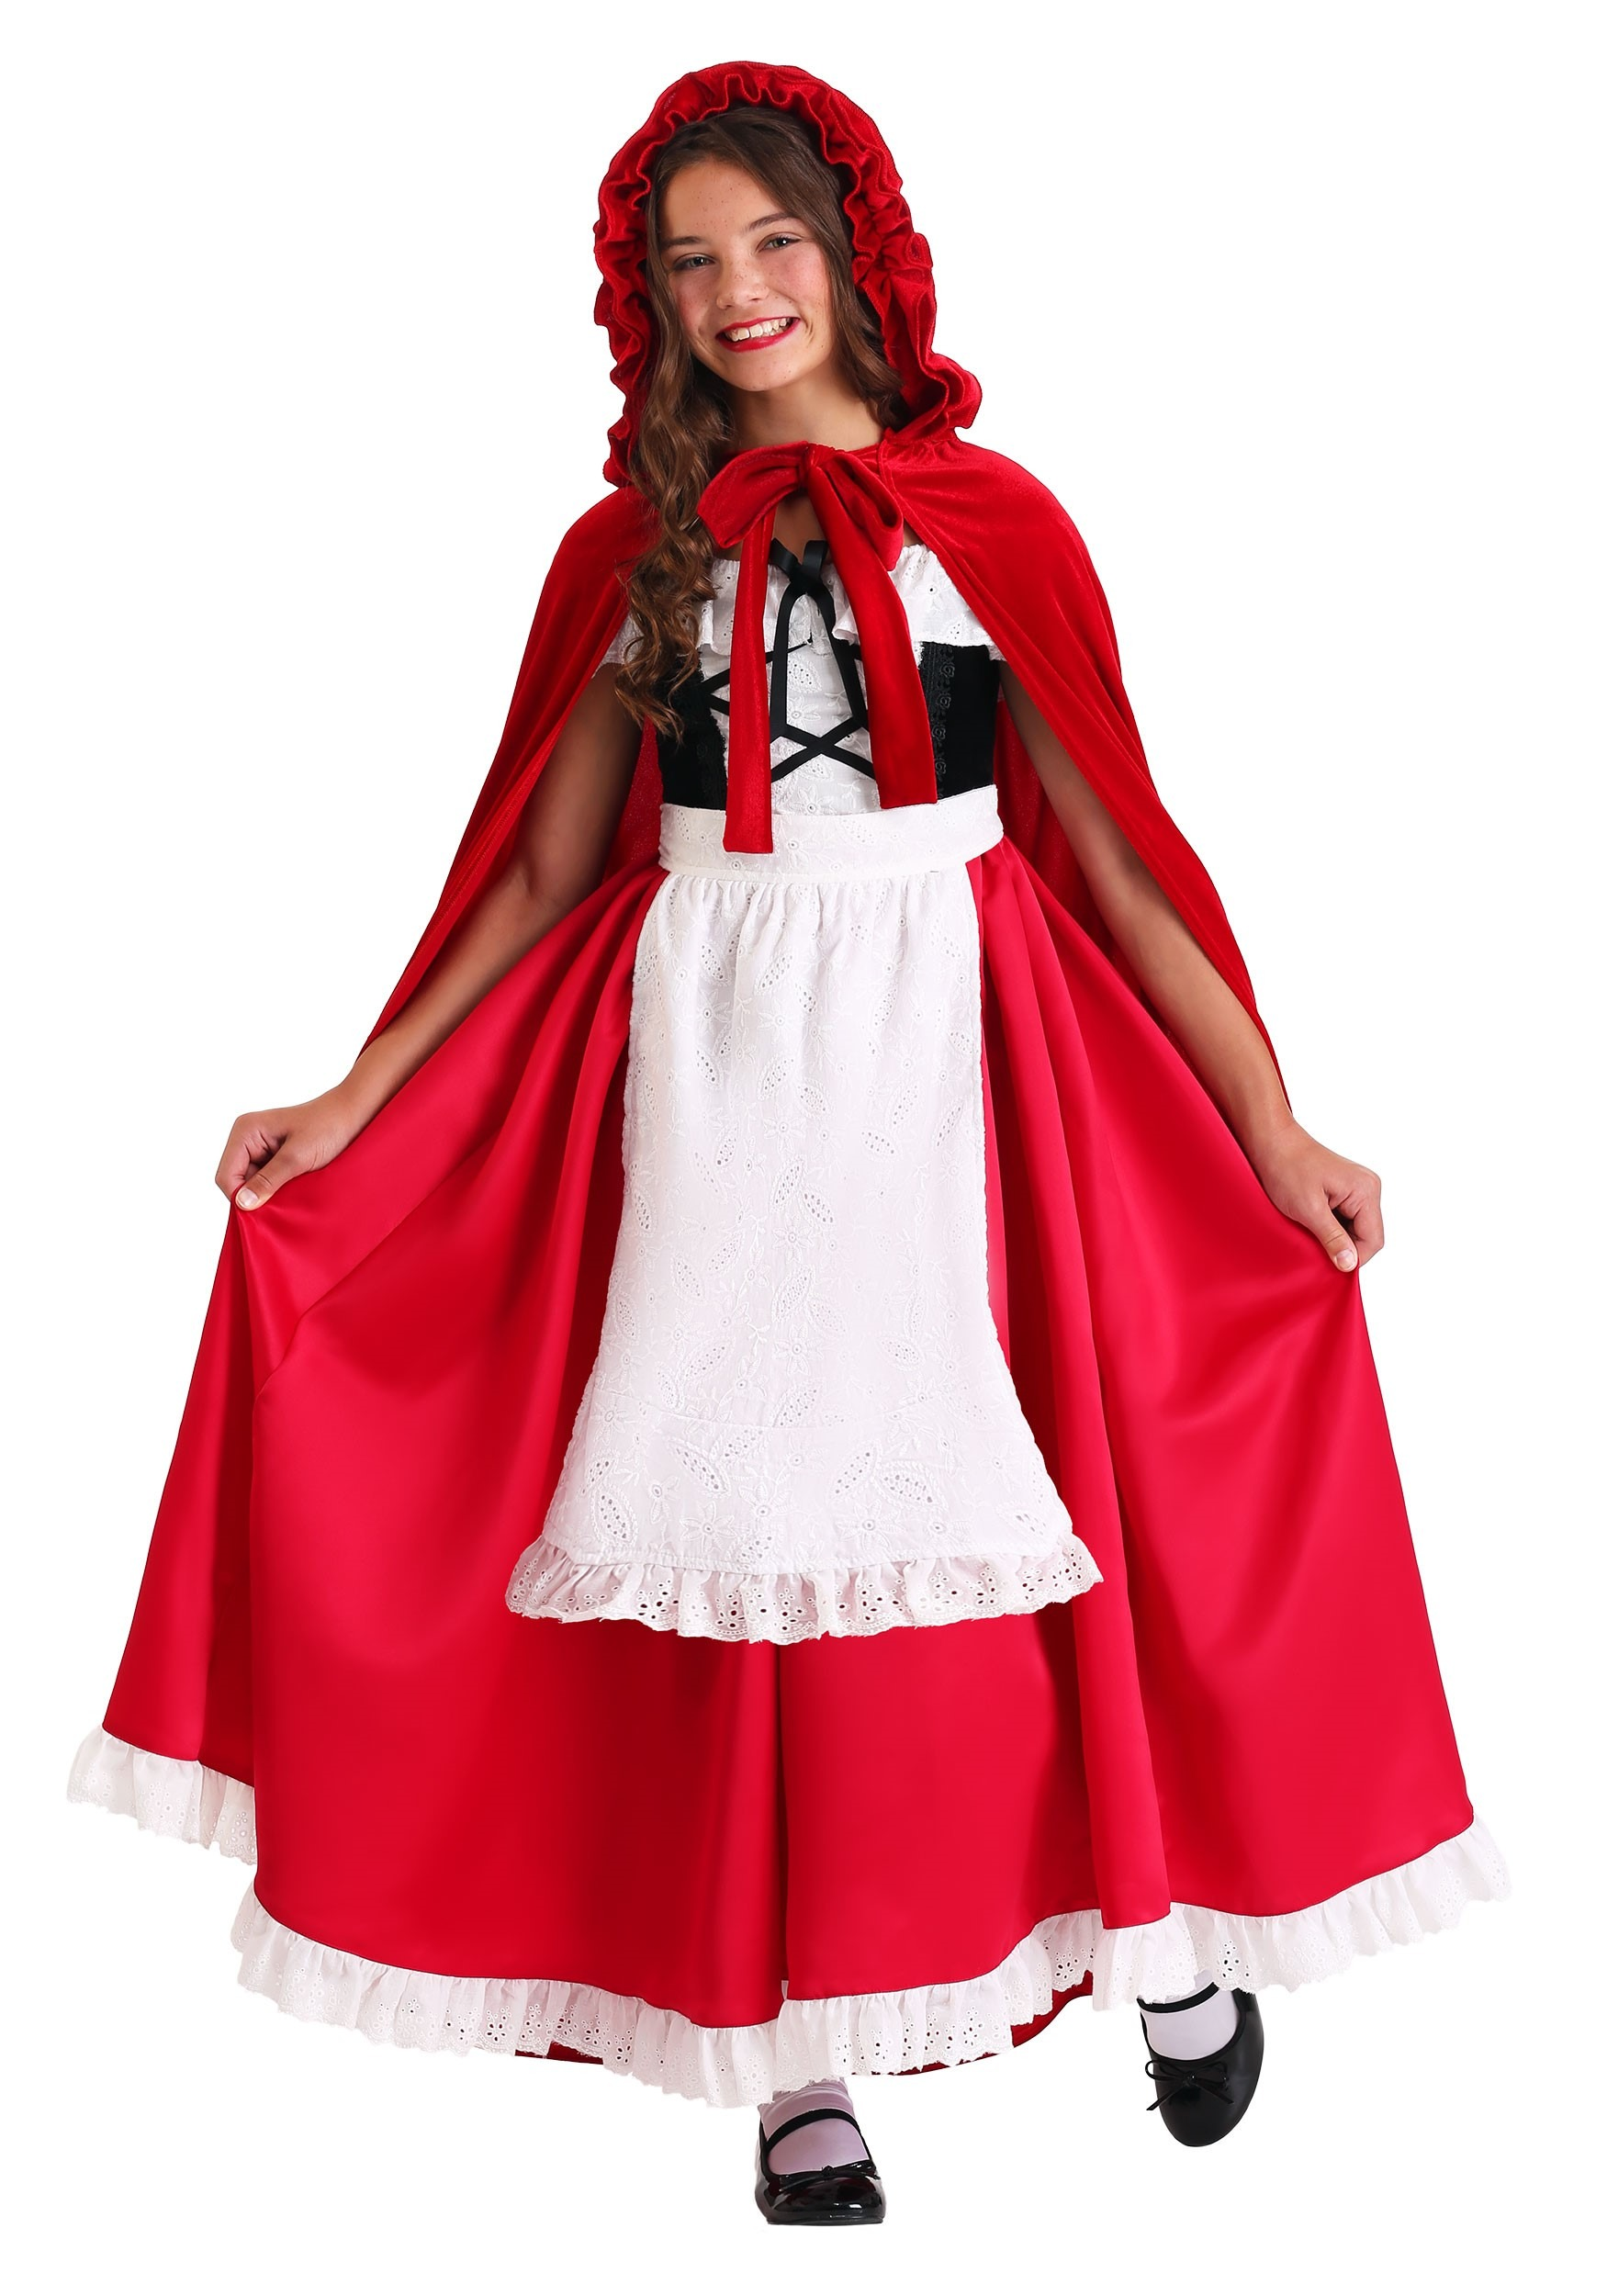 Child S Deluxe Red Riding Hood Costume